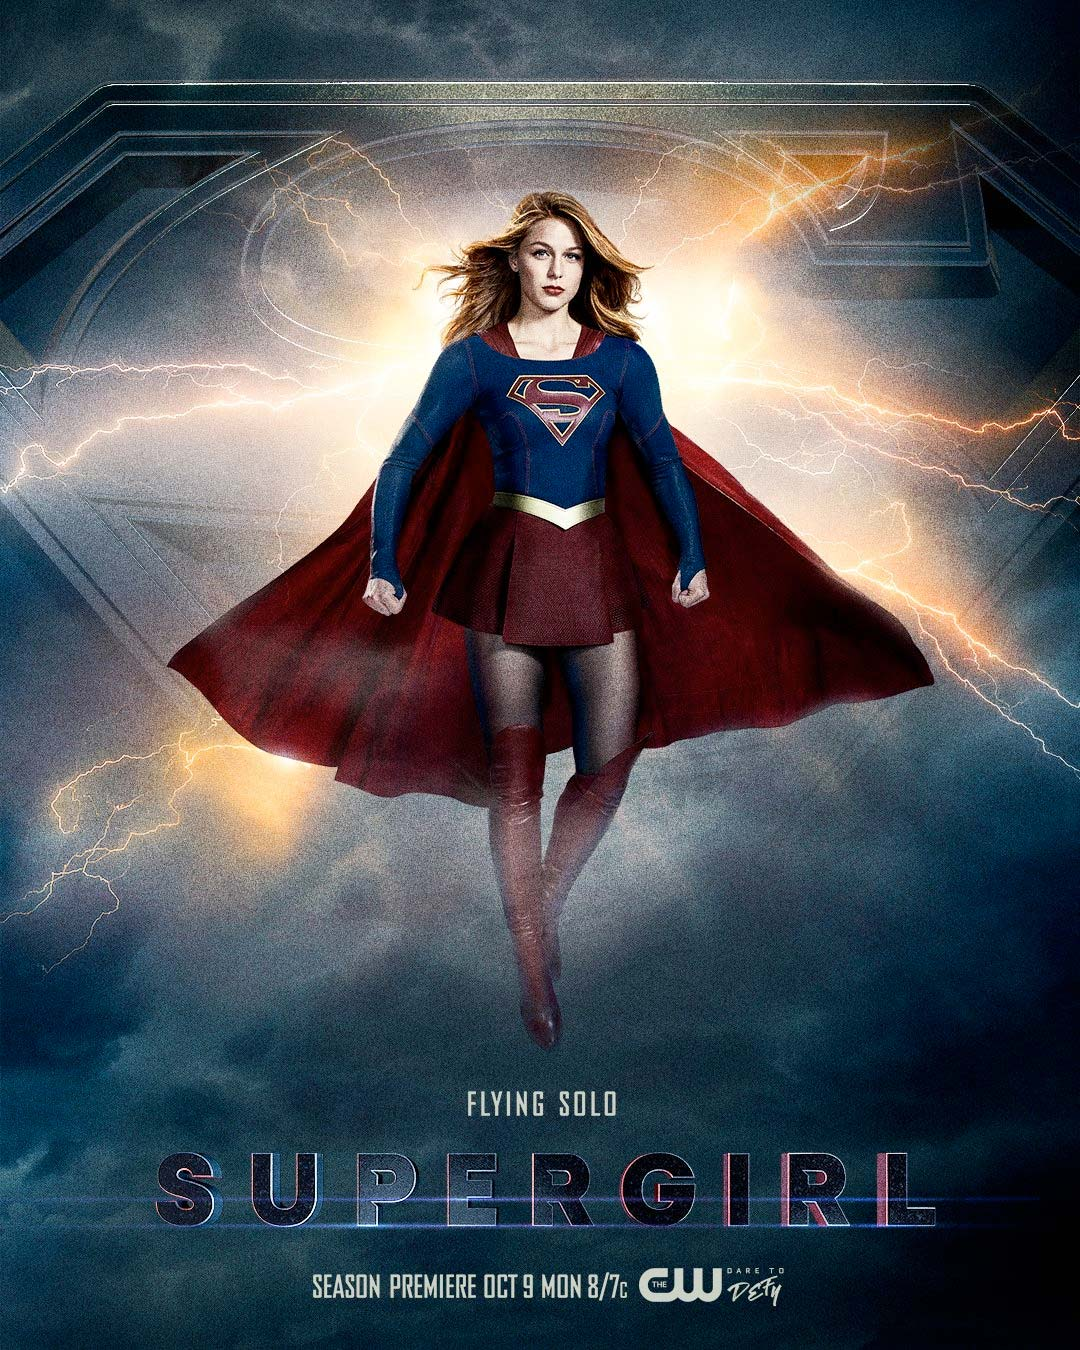 Supergirl season 3 poster